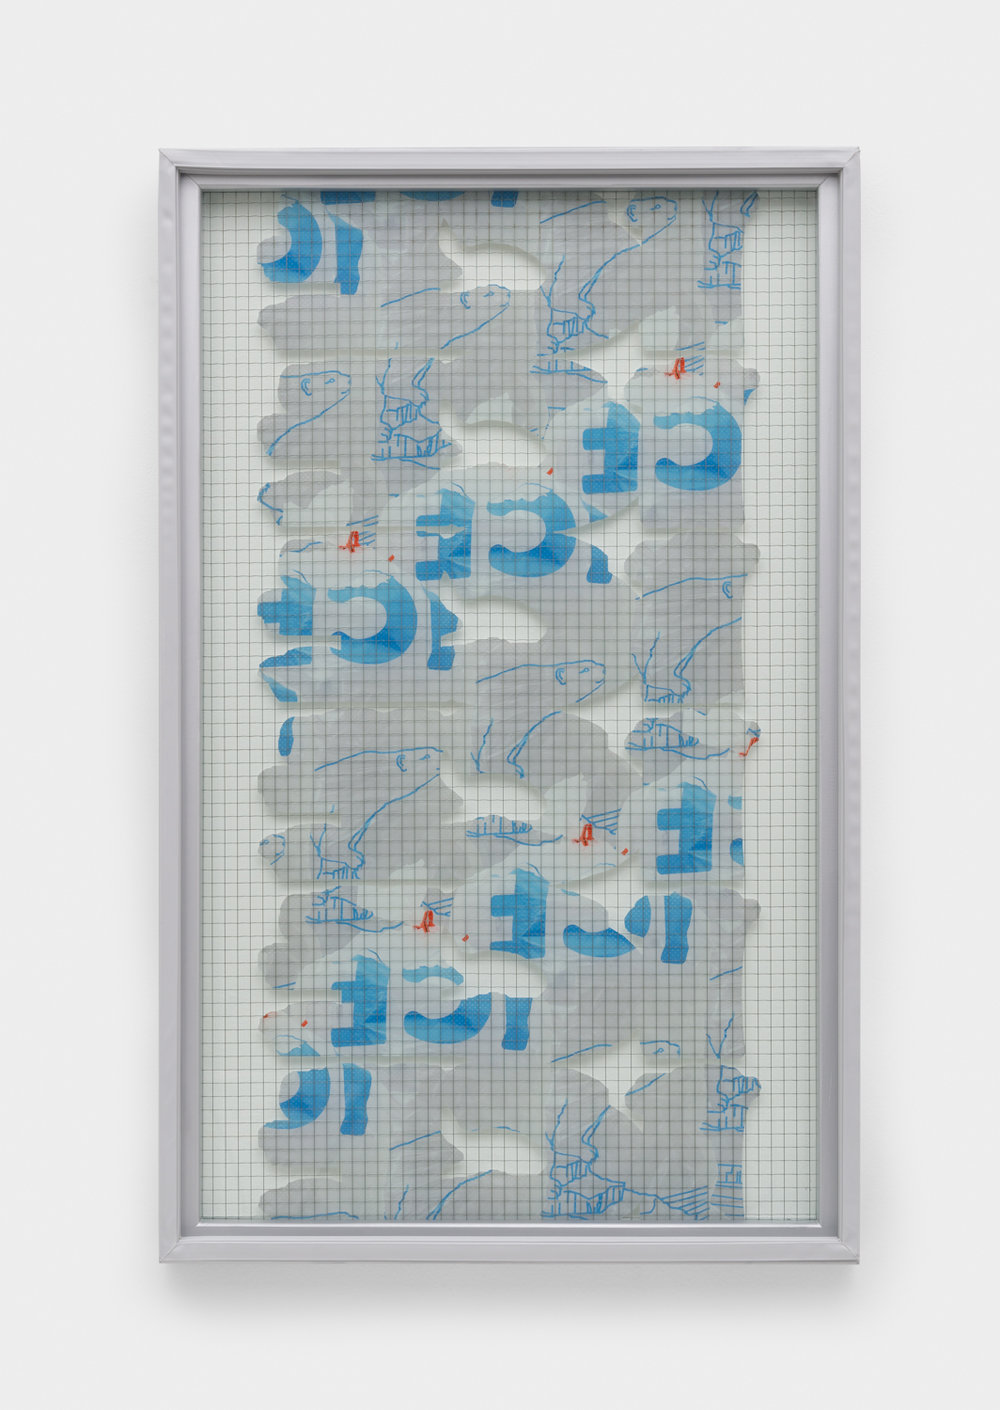 Chris Bradley  Freezer Door (Ice Bag Abstraction)  2015 Wire glass, printed clear film, wood, rubber gasket 43h x 26 ½w x 2d in CB147